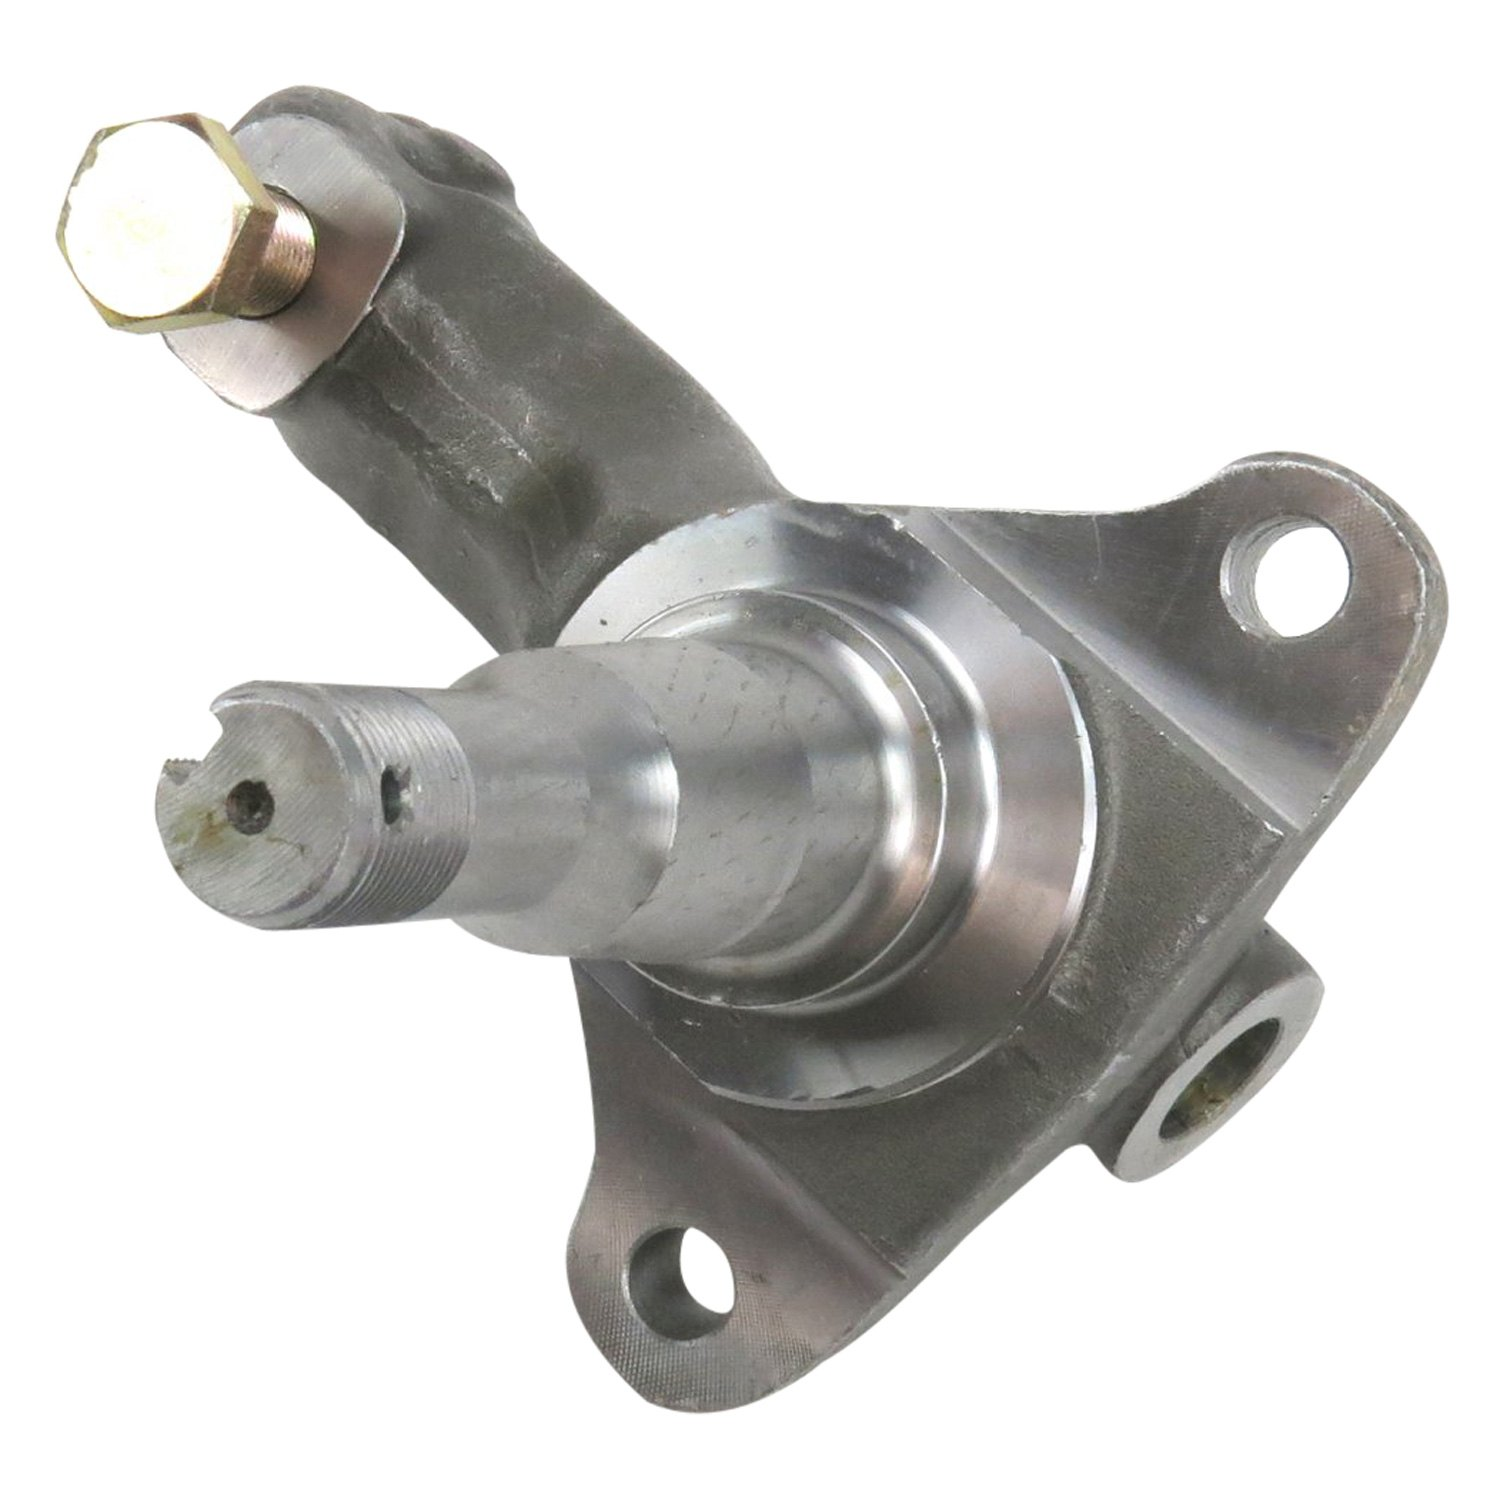 Brake Spindle Tool : Helix hexspin stock disk brake spindle